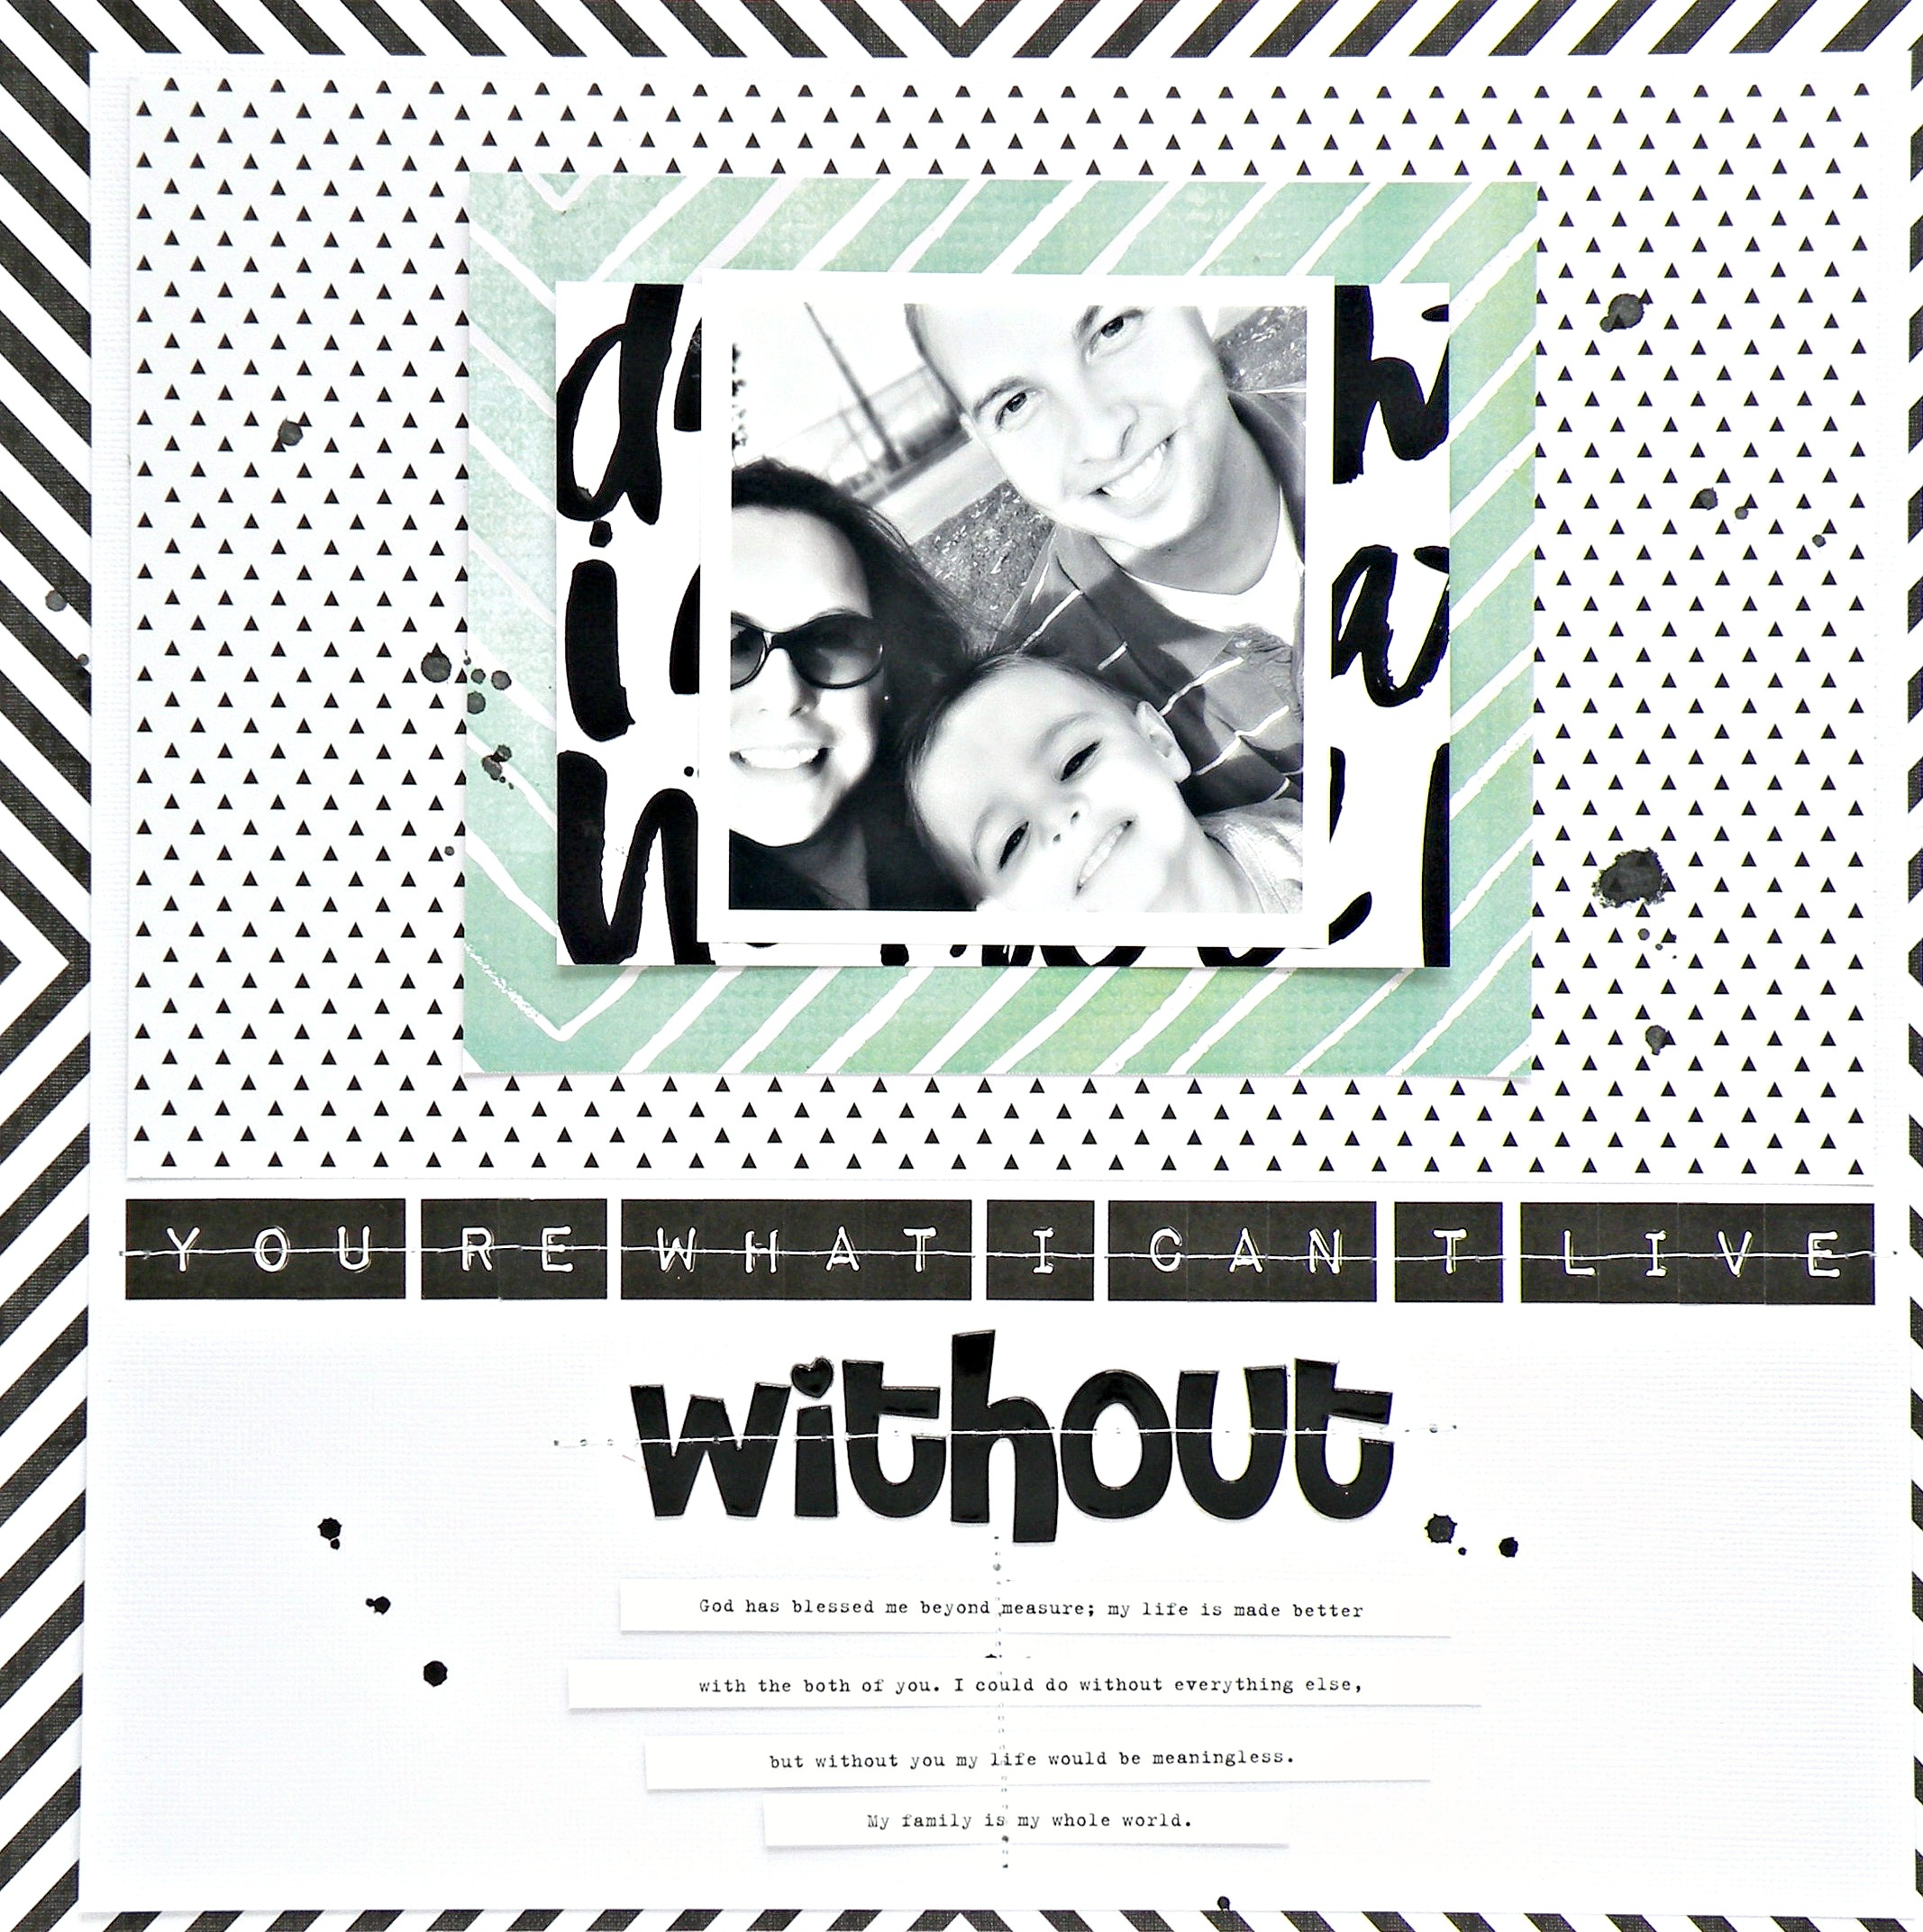 I can t live without scrapbook page by design team member stephanie buice me